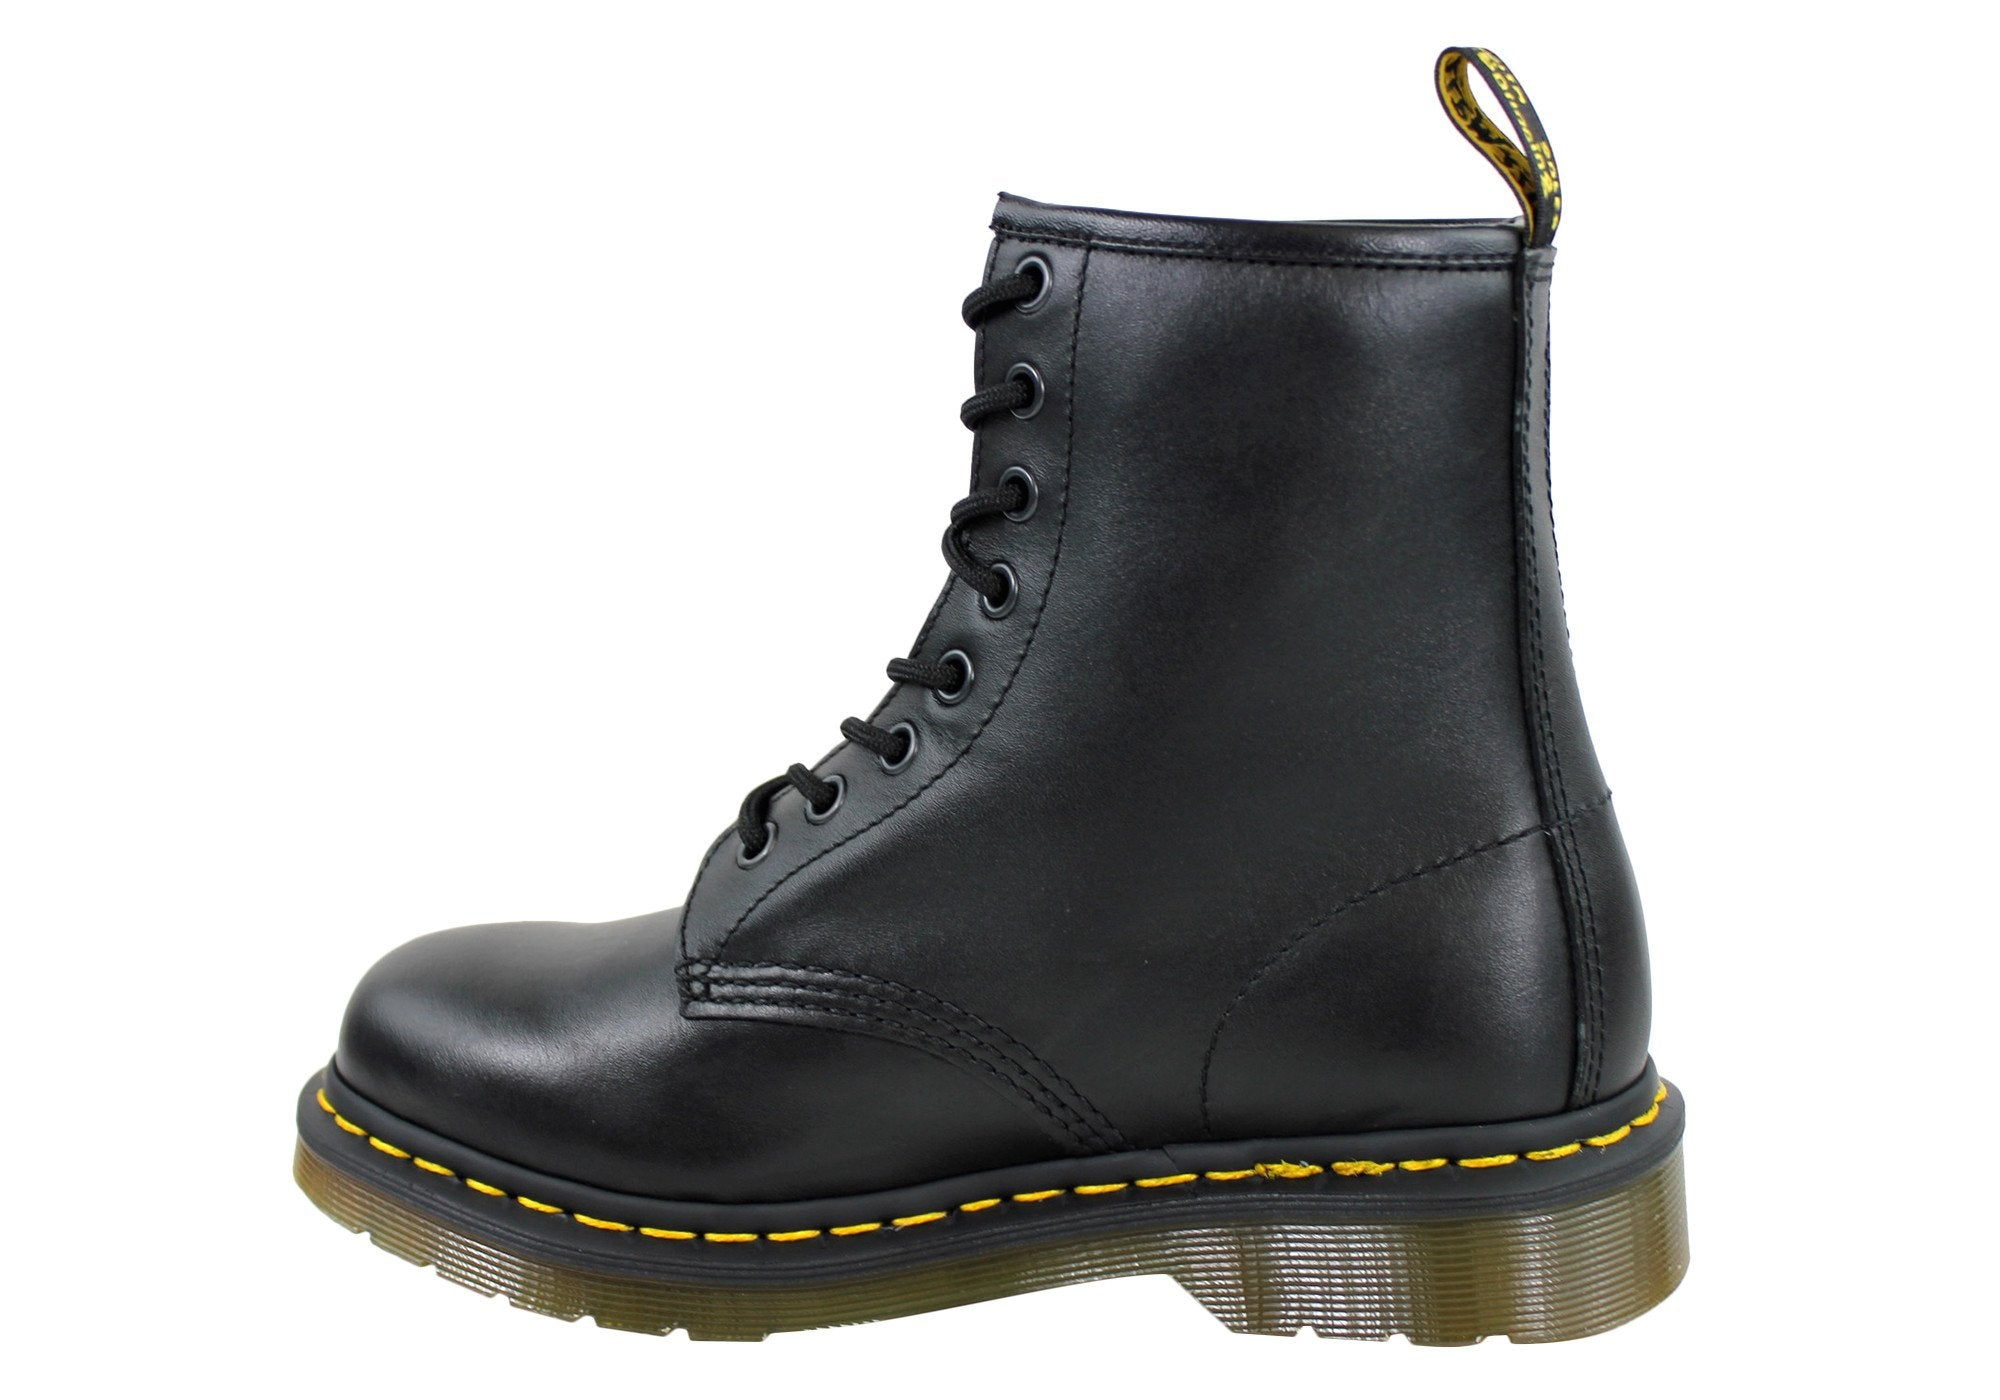 DR. MARTENS 1460 REVIEW